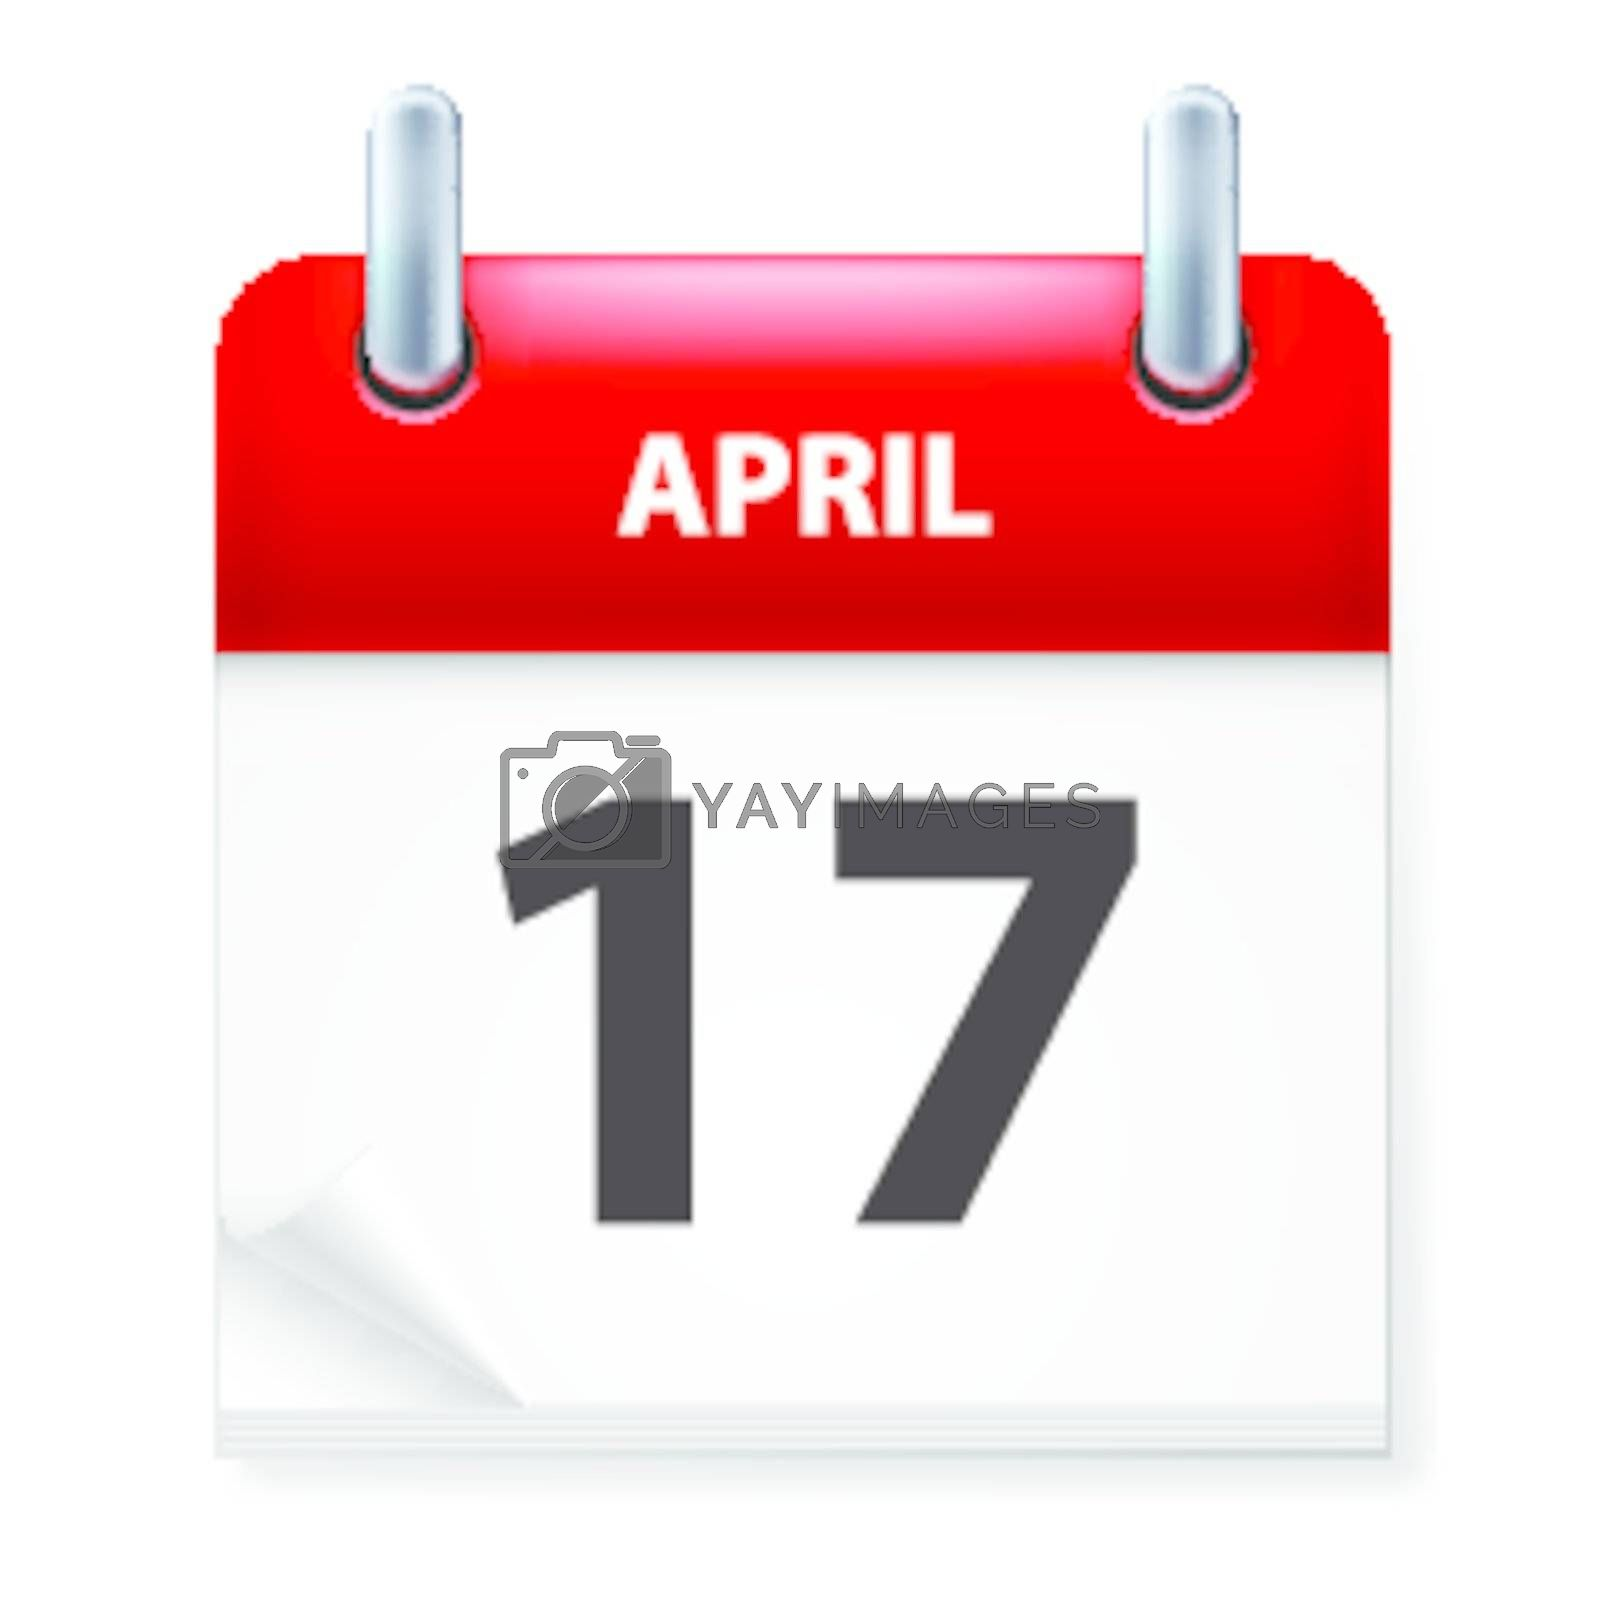 Seventeenth in April Calendar icon on white background